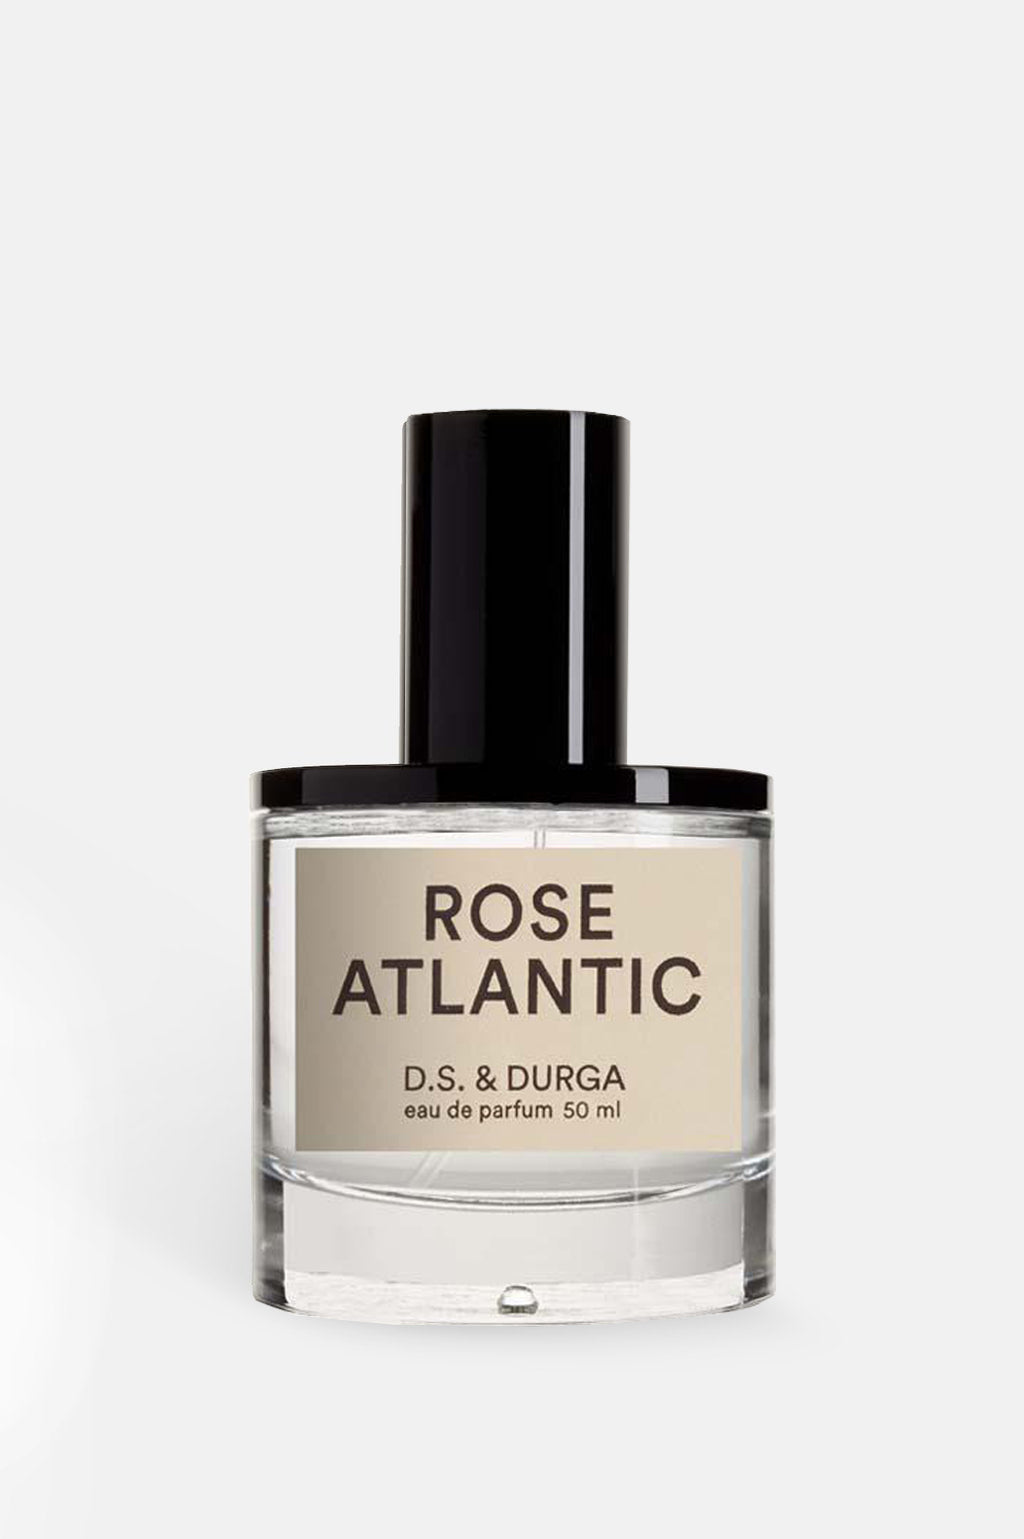 Rose Atlantic 50 ml Eau De Parfum